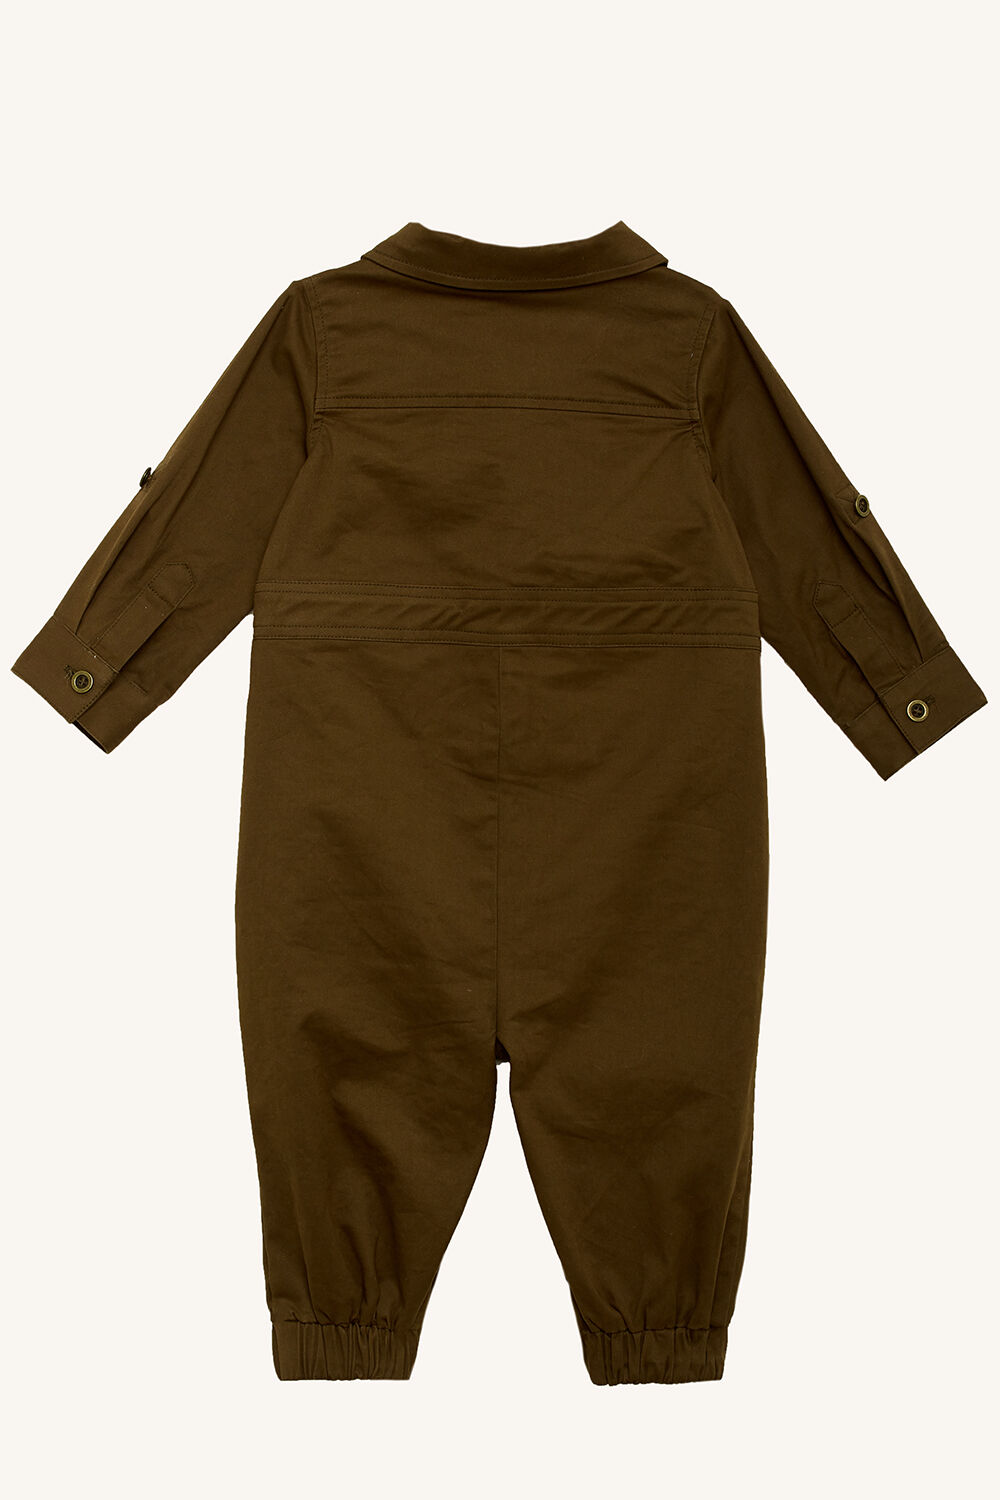 UTILITY BOILER JUMPSUIT in colour COVERT GREEN